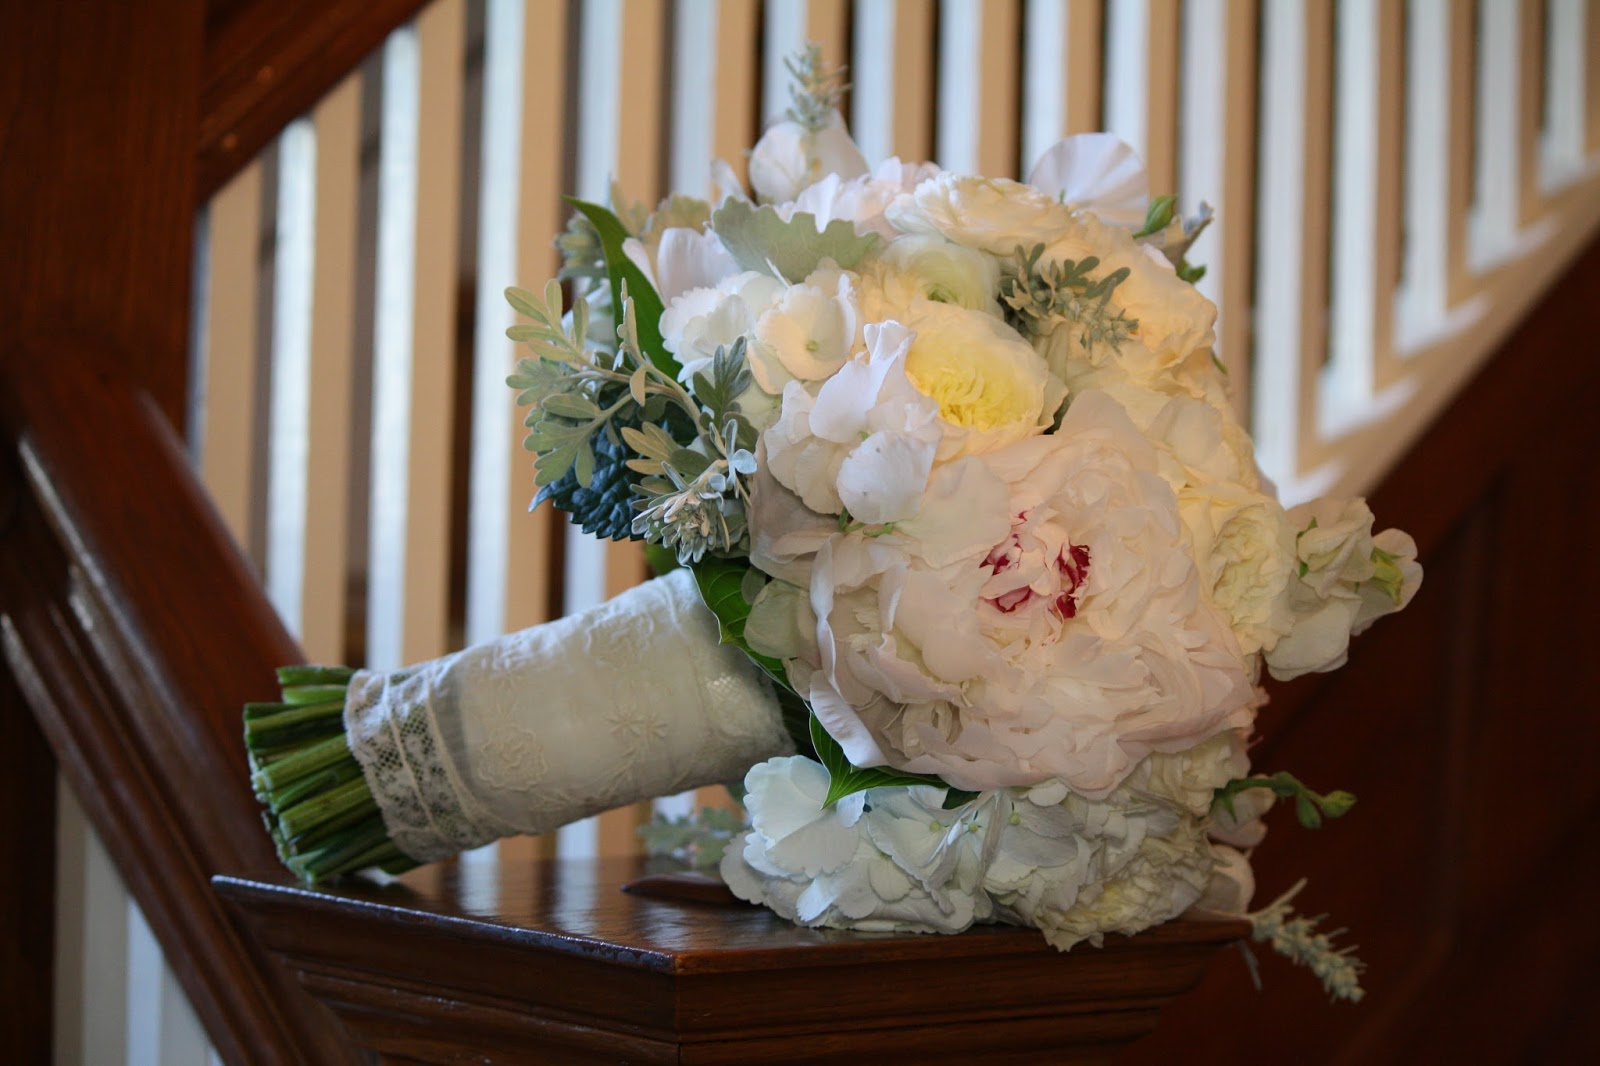 Cream Garden Rose and Peony Bride Bouquet - Elegant, yet natural, hand-tied bouquet composed of white peonies, cream garden roses, white sweet peas, white ranunculus and dusty miller